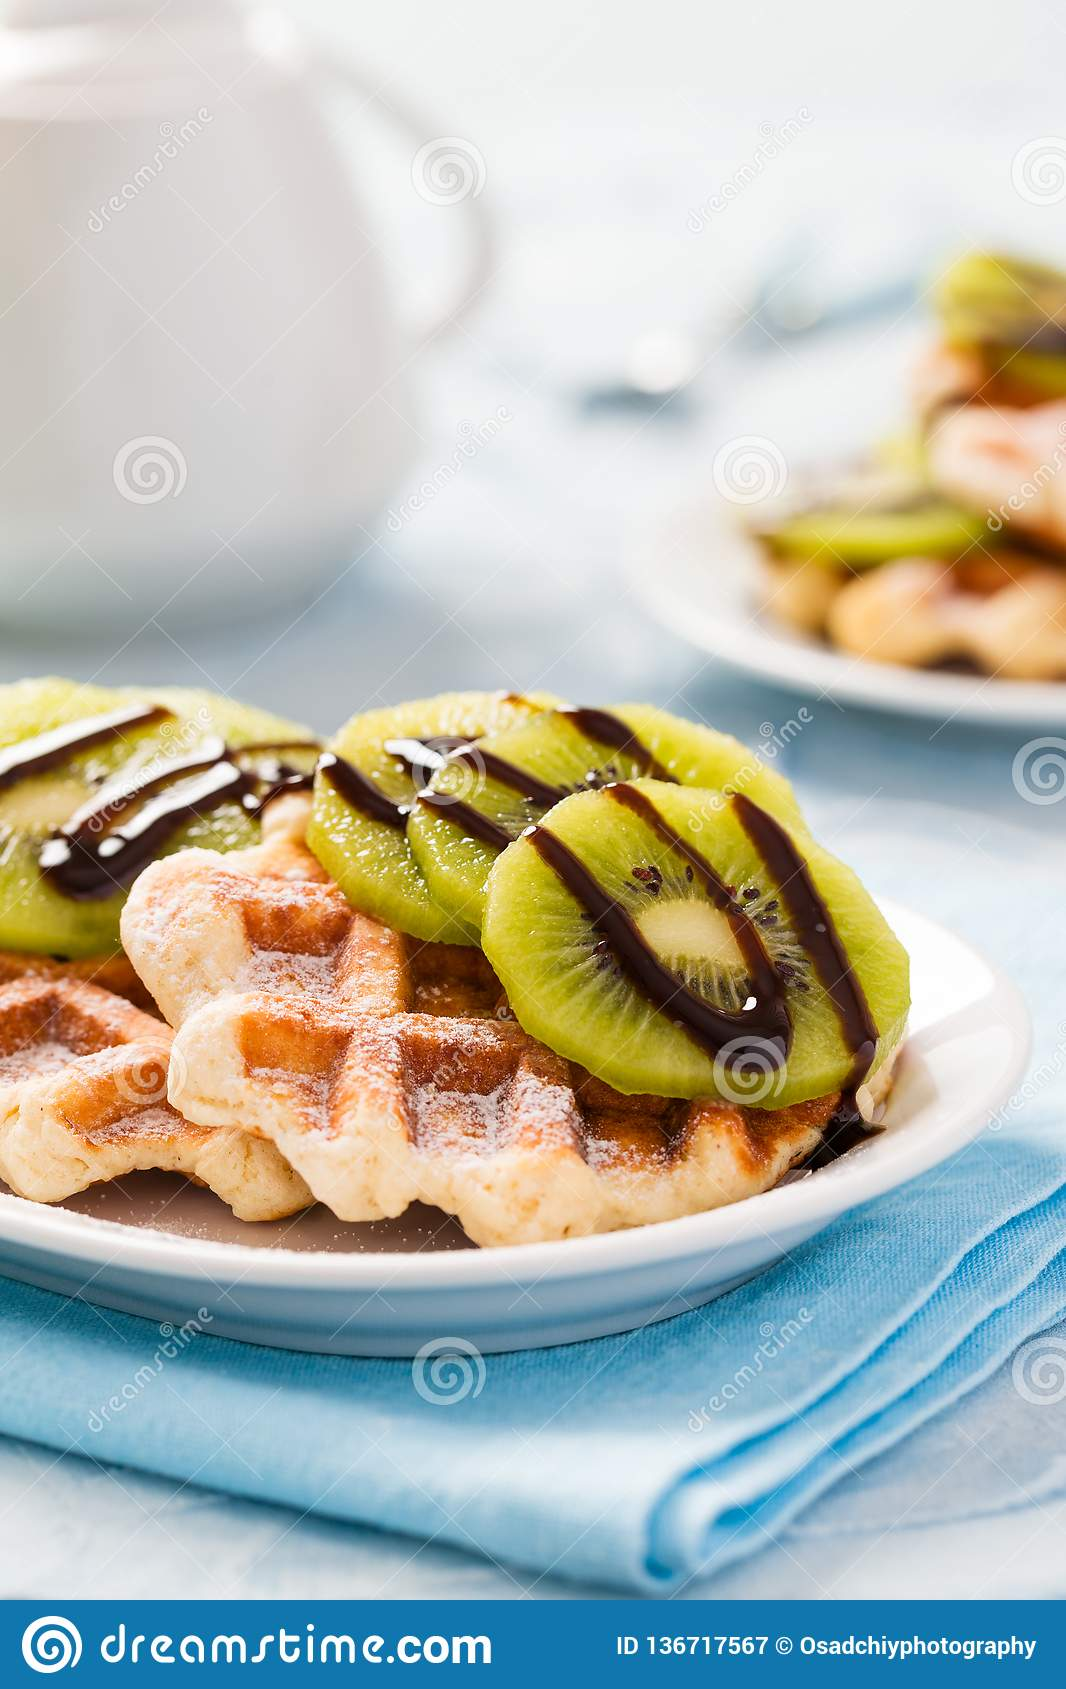 Belgian waffles with sliced kiwi fruit, sugar powder and chocolate syrup with teapot of hot drink.